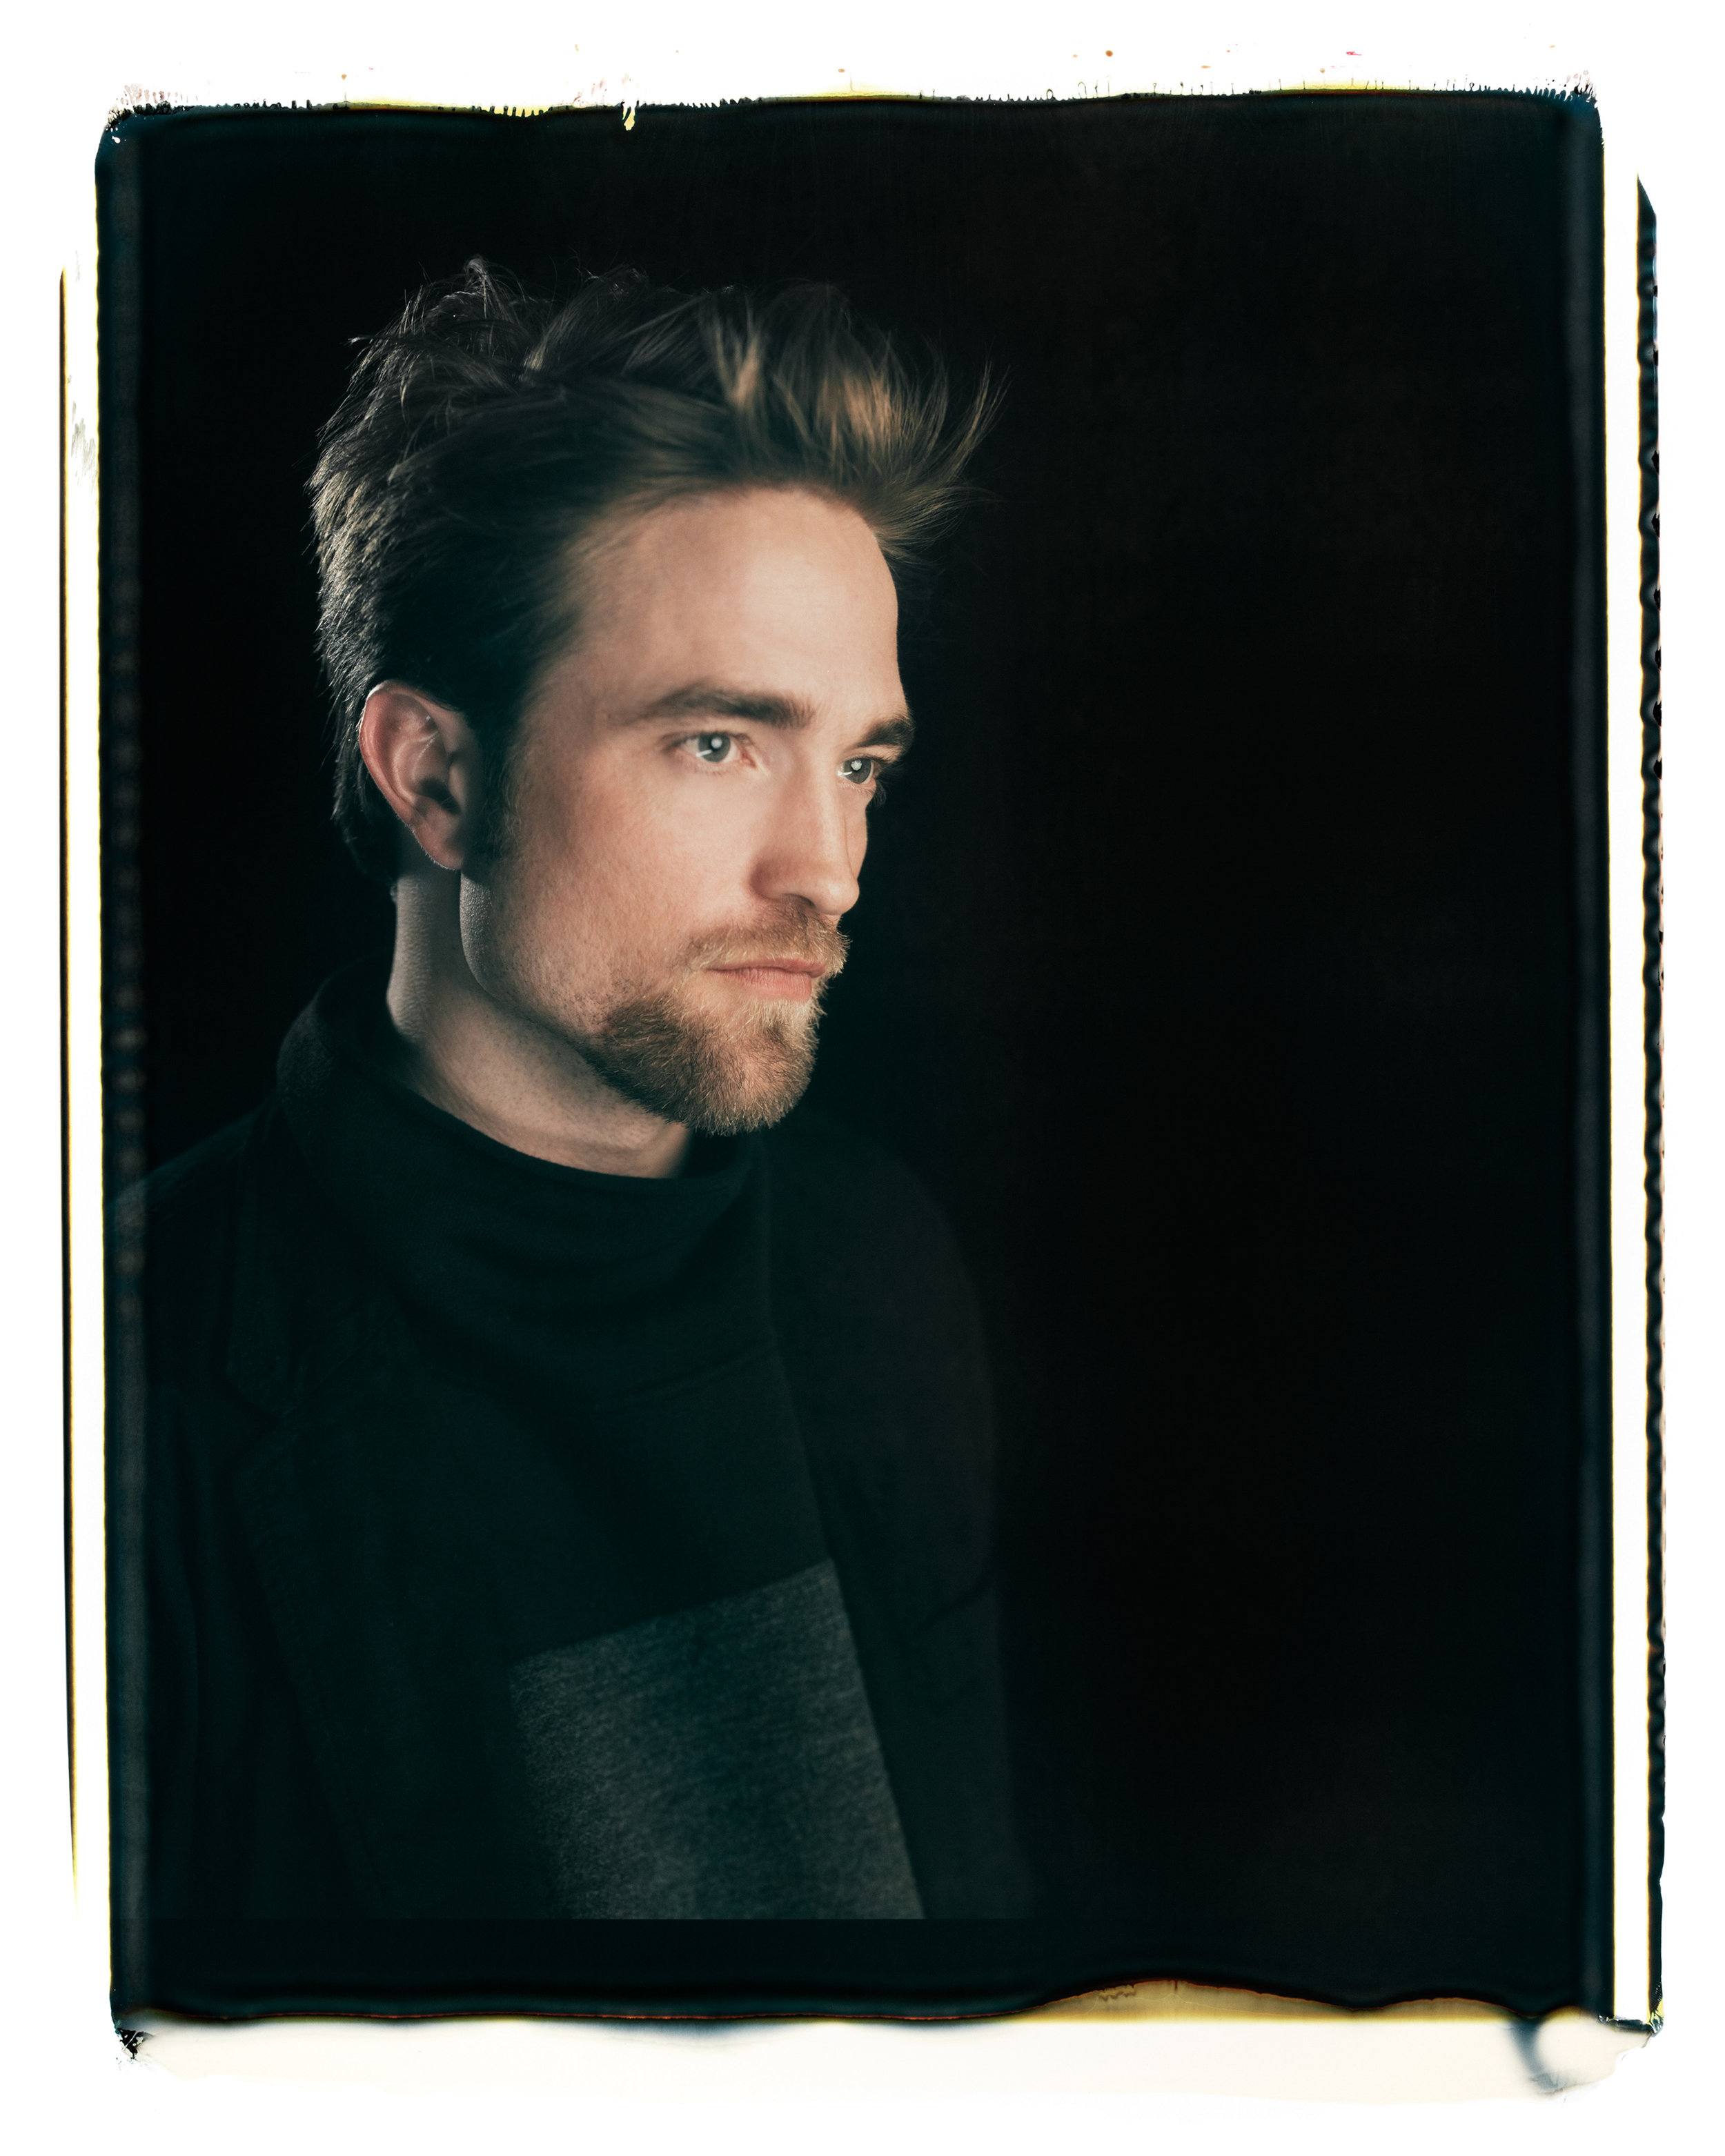 Robert Pattinson on 20X24 polaroid 2016 .jpg